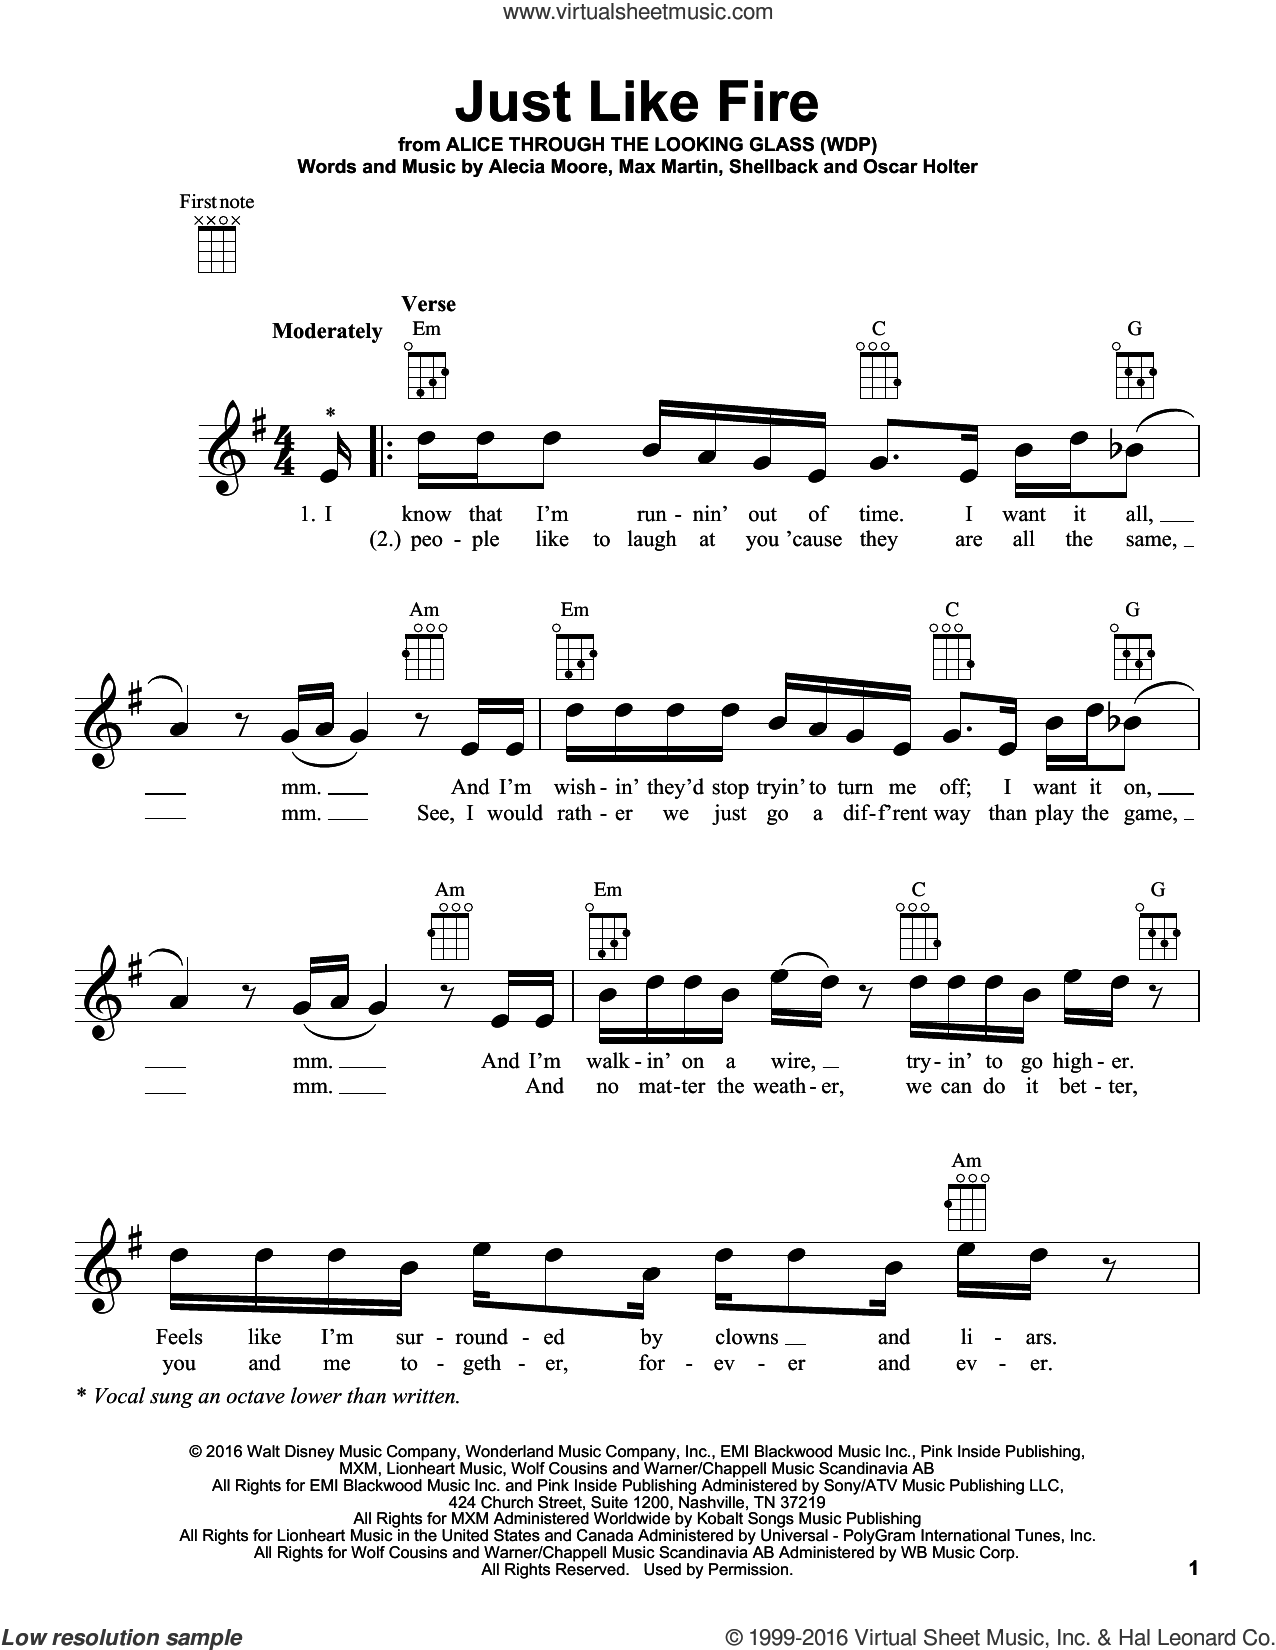 Just Like Fire sheet music for ukulele by Shellback, Miscellaneous, Alecia Moore, Johan Schuster, Max Martin and Oscar Holter. Score Image Preview.